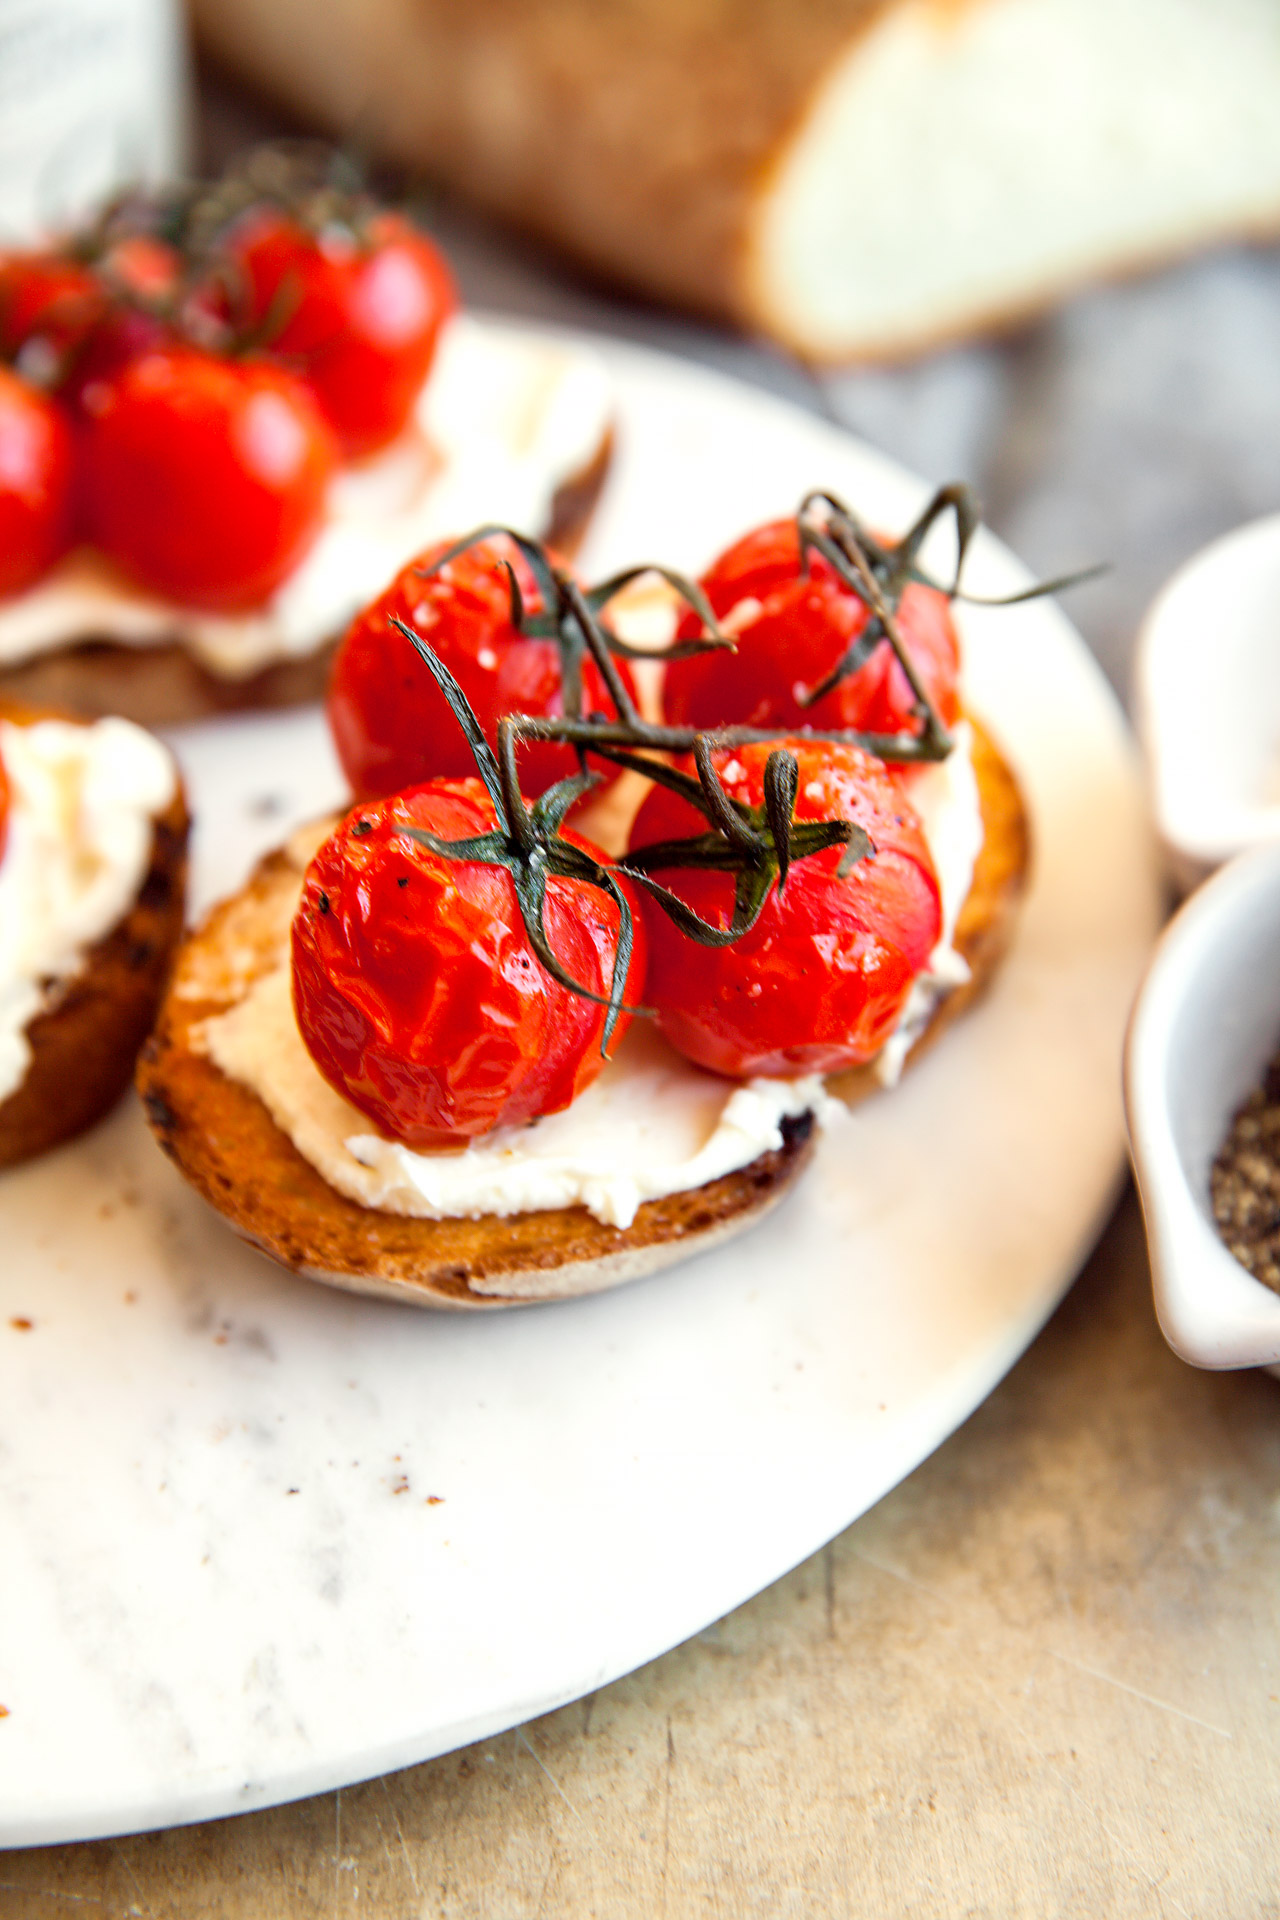 Tomato and Ricotta Bruschetta